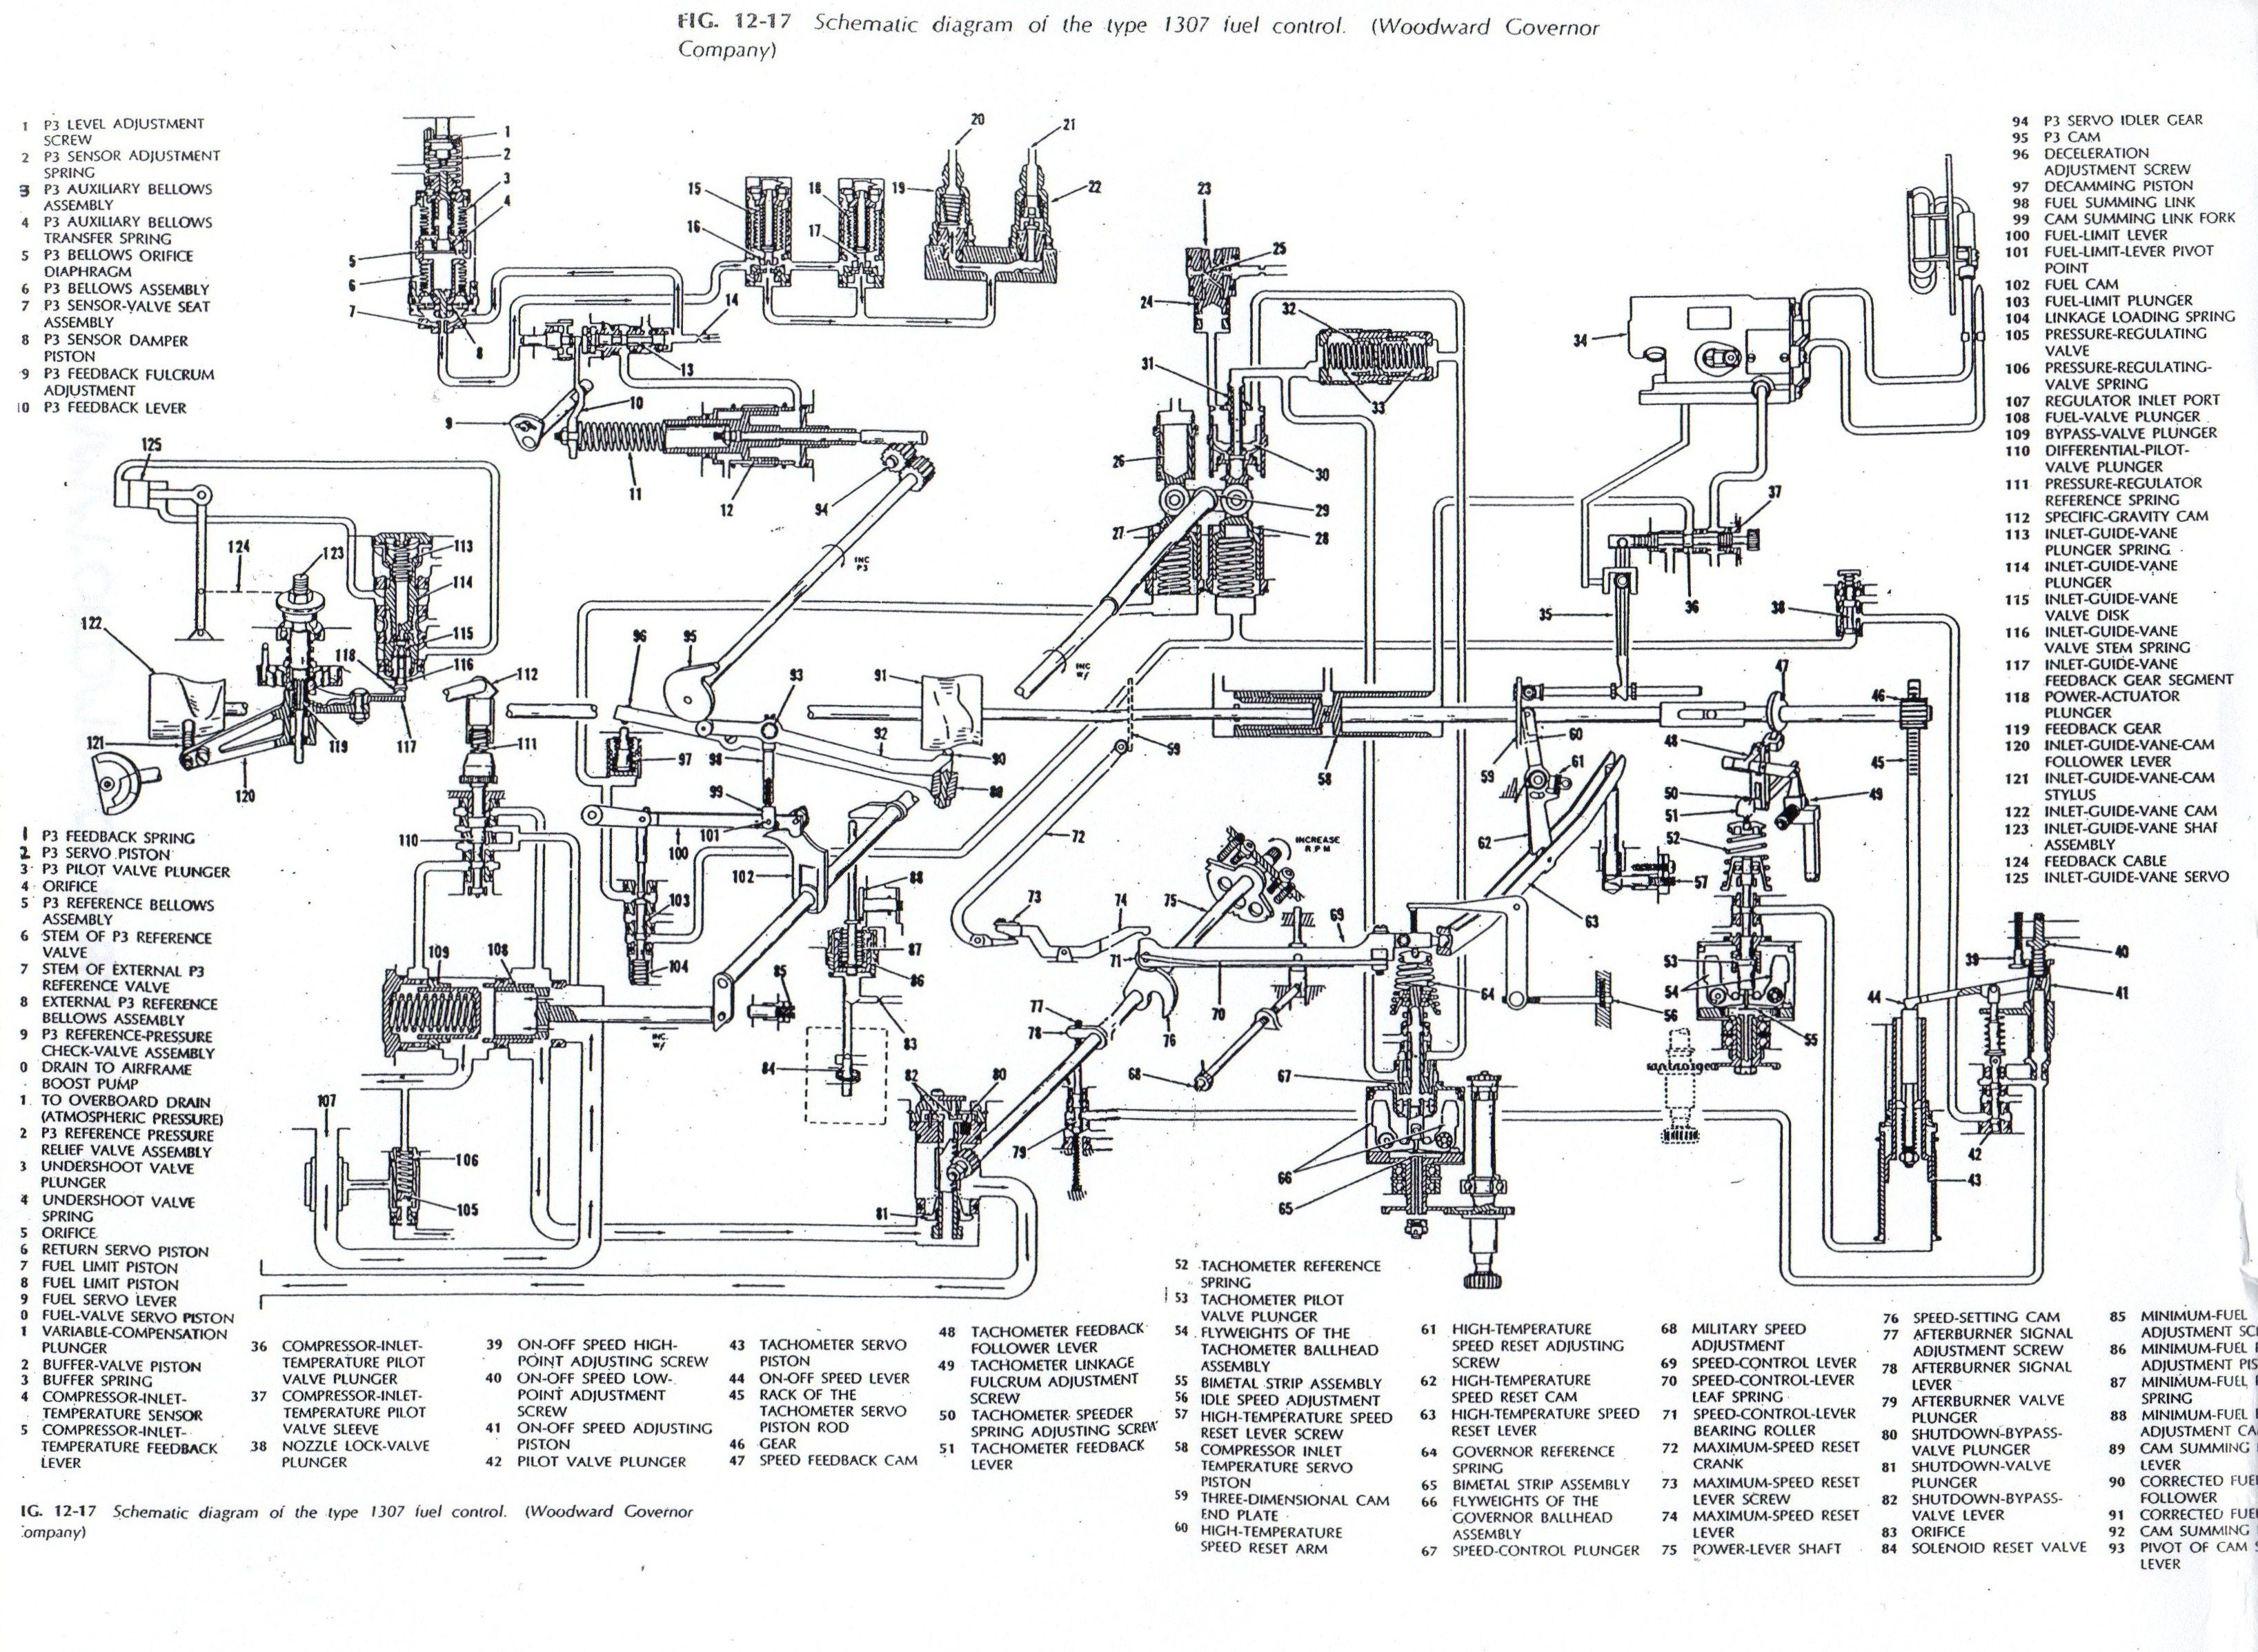 A Schematic Drawing Of The Woodward Type Main Engine